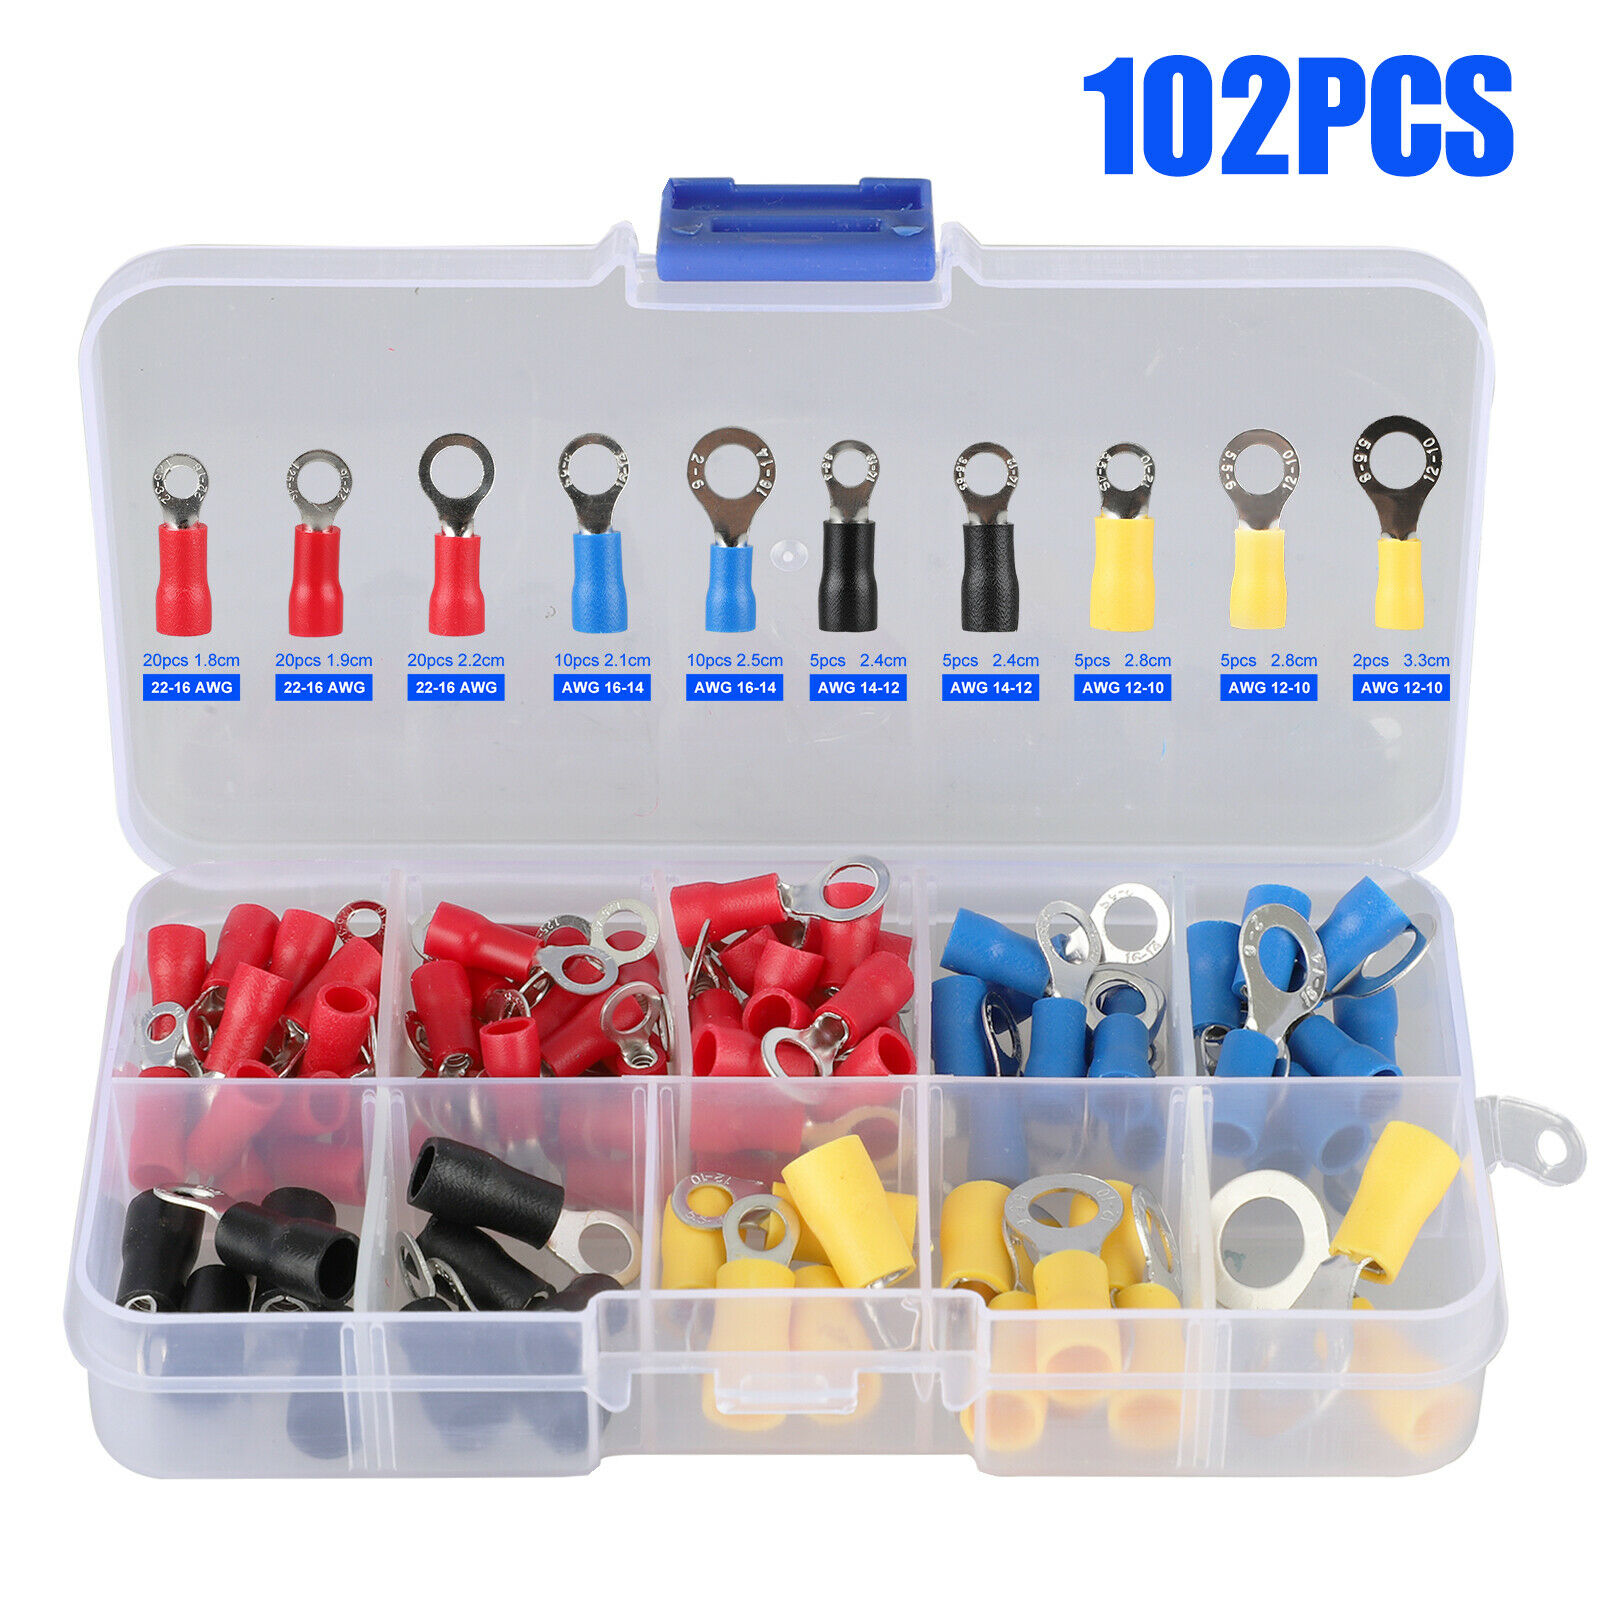 102pc Assorted Insulated Copper Ring Crimp Wire Cord Terminal Connector Kit Set